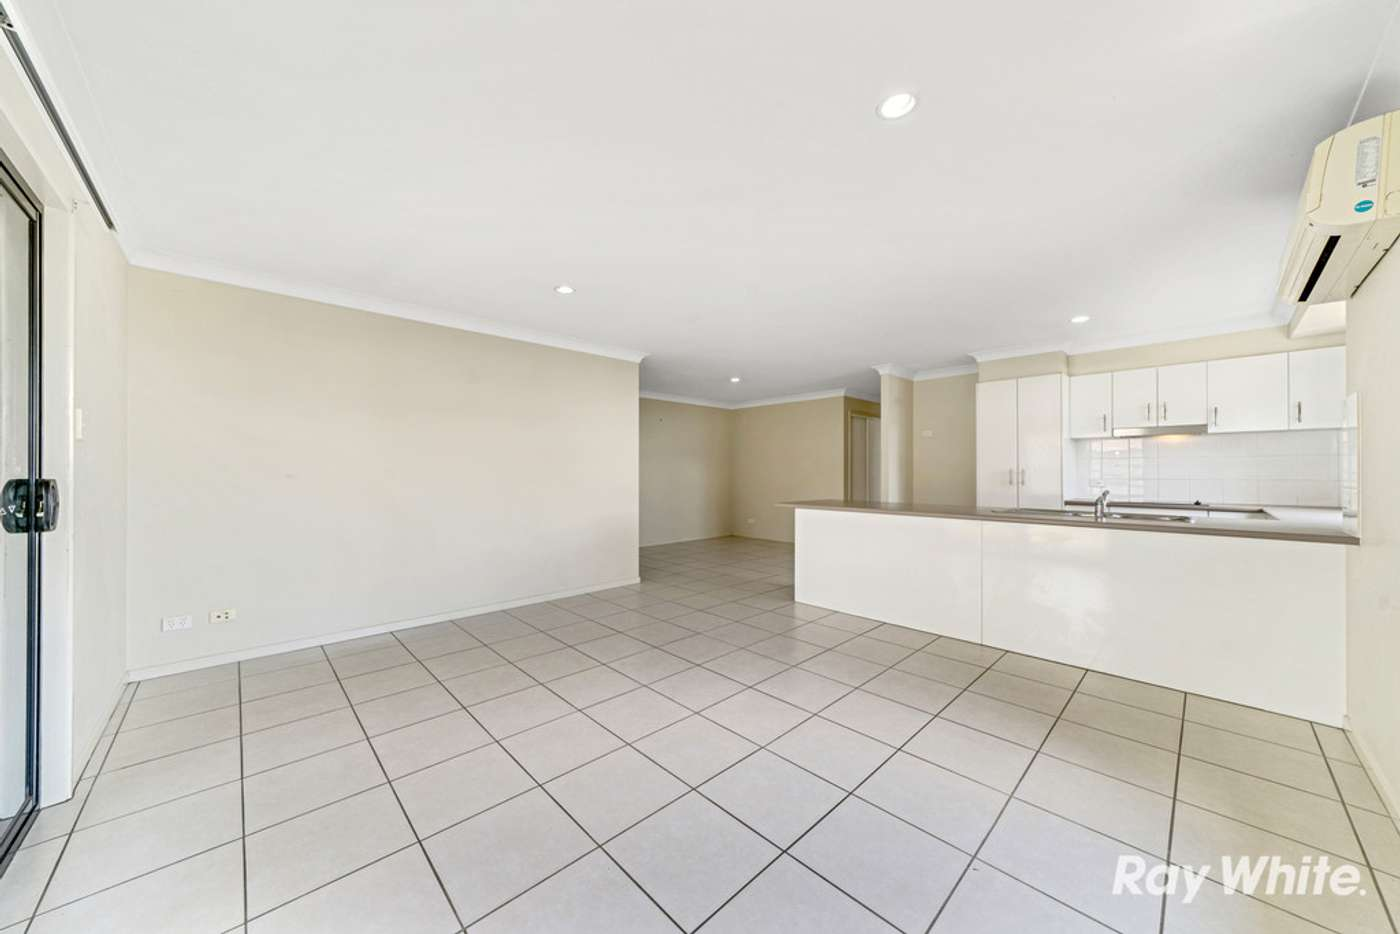 Fifth view of Homely house listing, 21 Prestige Drive, Marsden QLD 4132